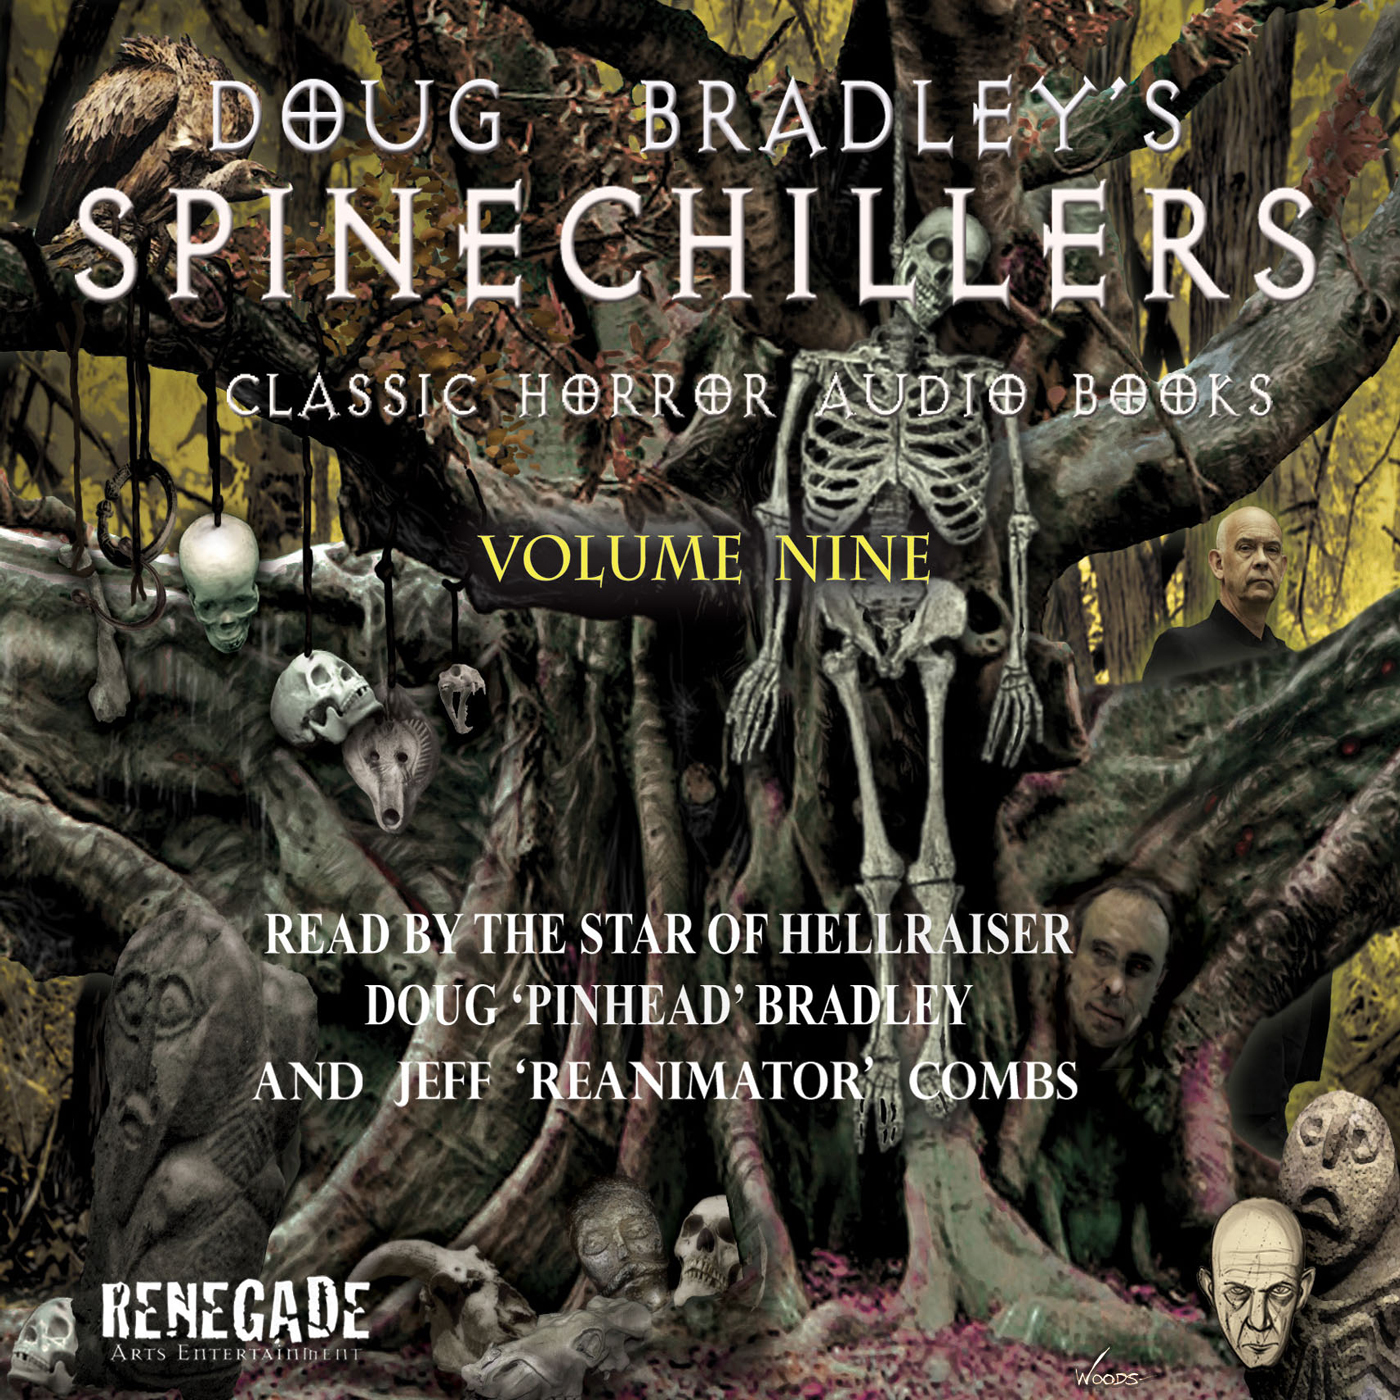 Doug Bradley's Spinechillers Volume Nine